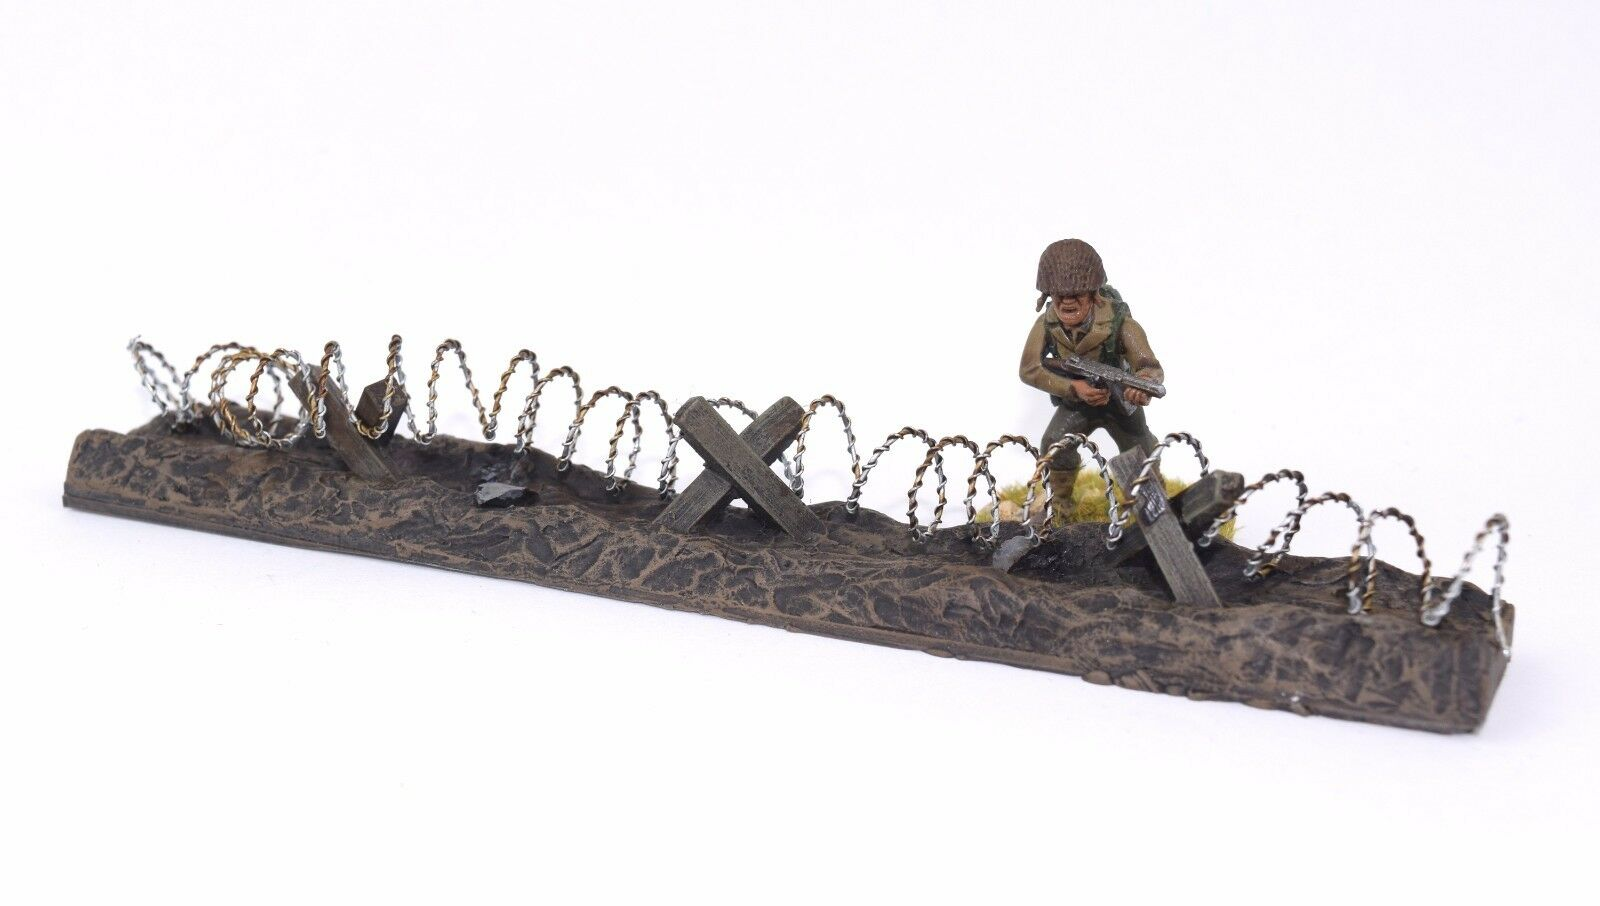 WWG Barbed Wire Defensive Position Painted and Unpainted - Wargames Diorama